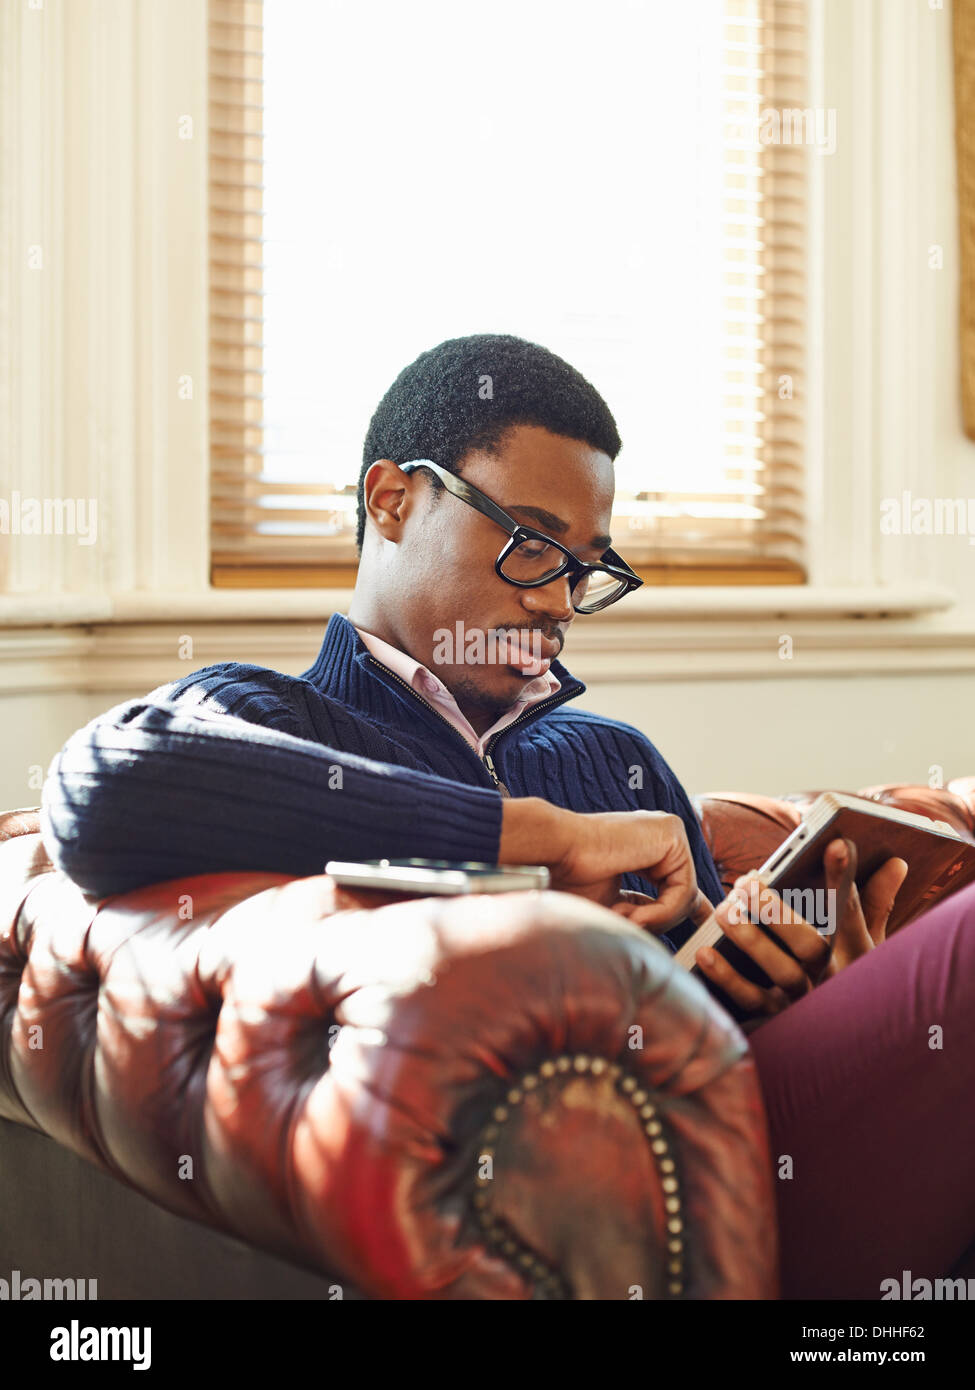 Young man reading on sofa - Stock Image